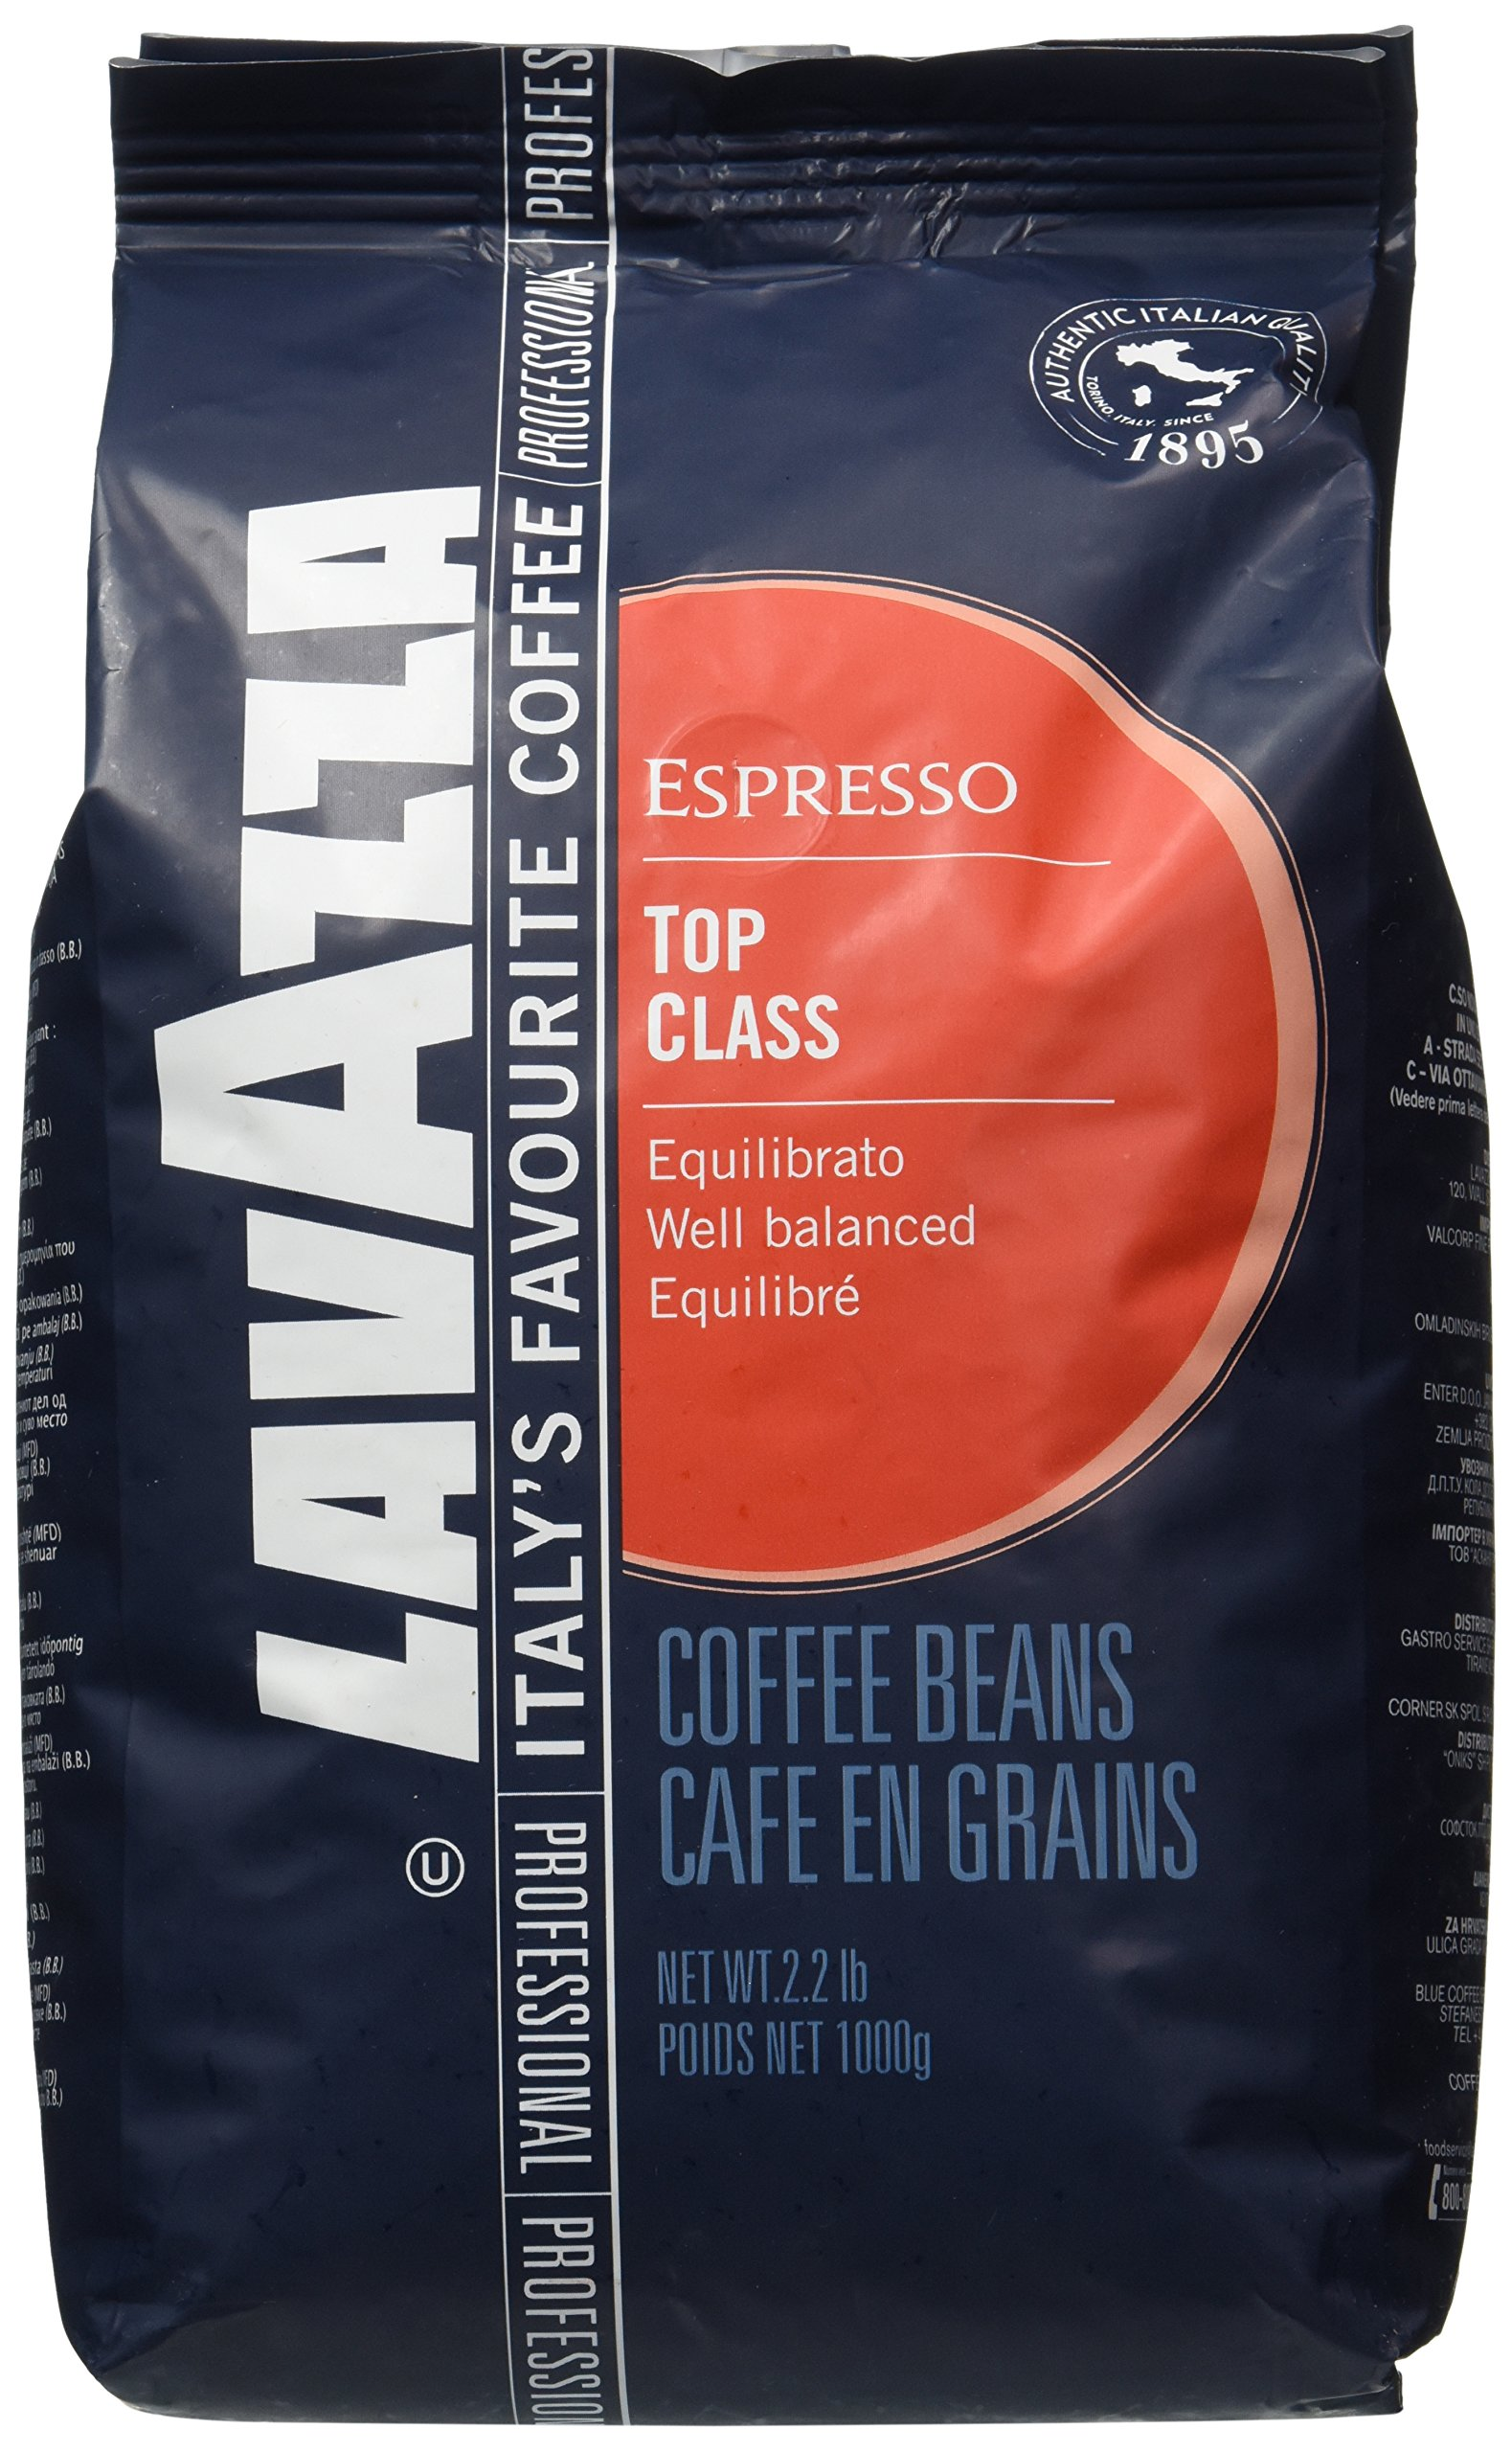 Lavazza Top Class Espresso Whole Beans Coffee 2.2lb/1kg